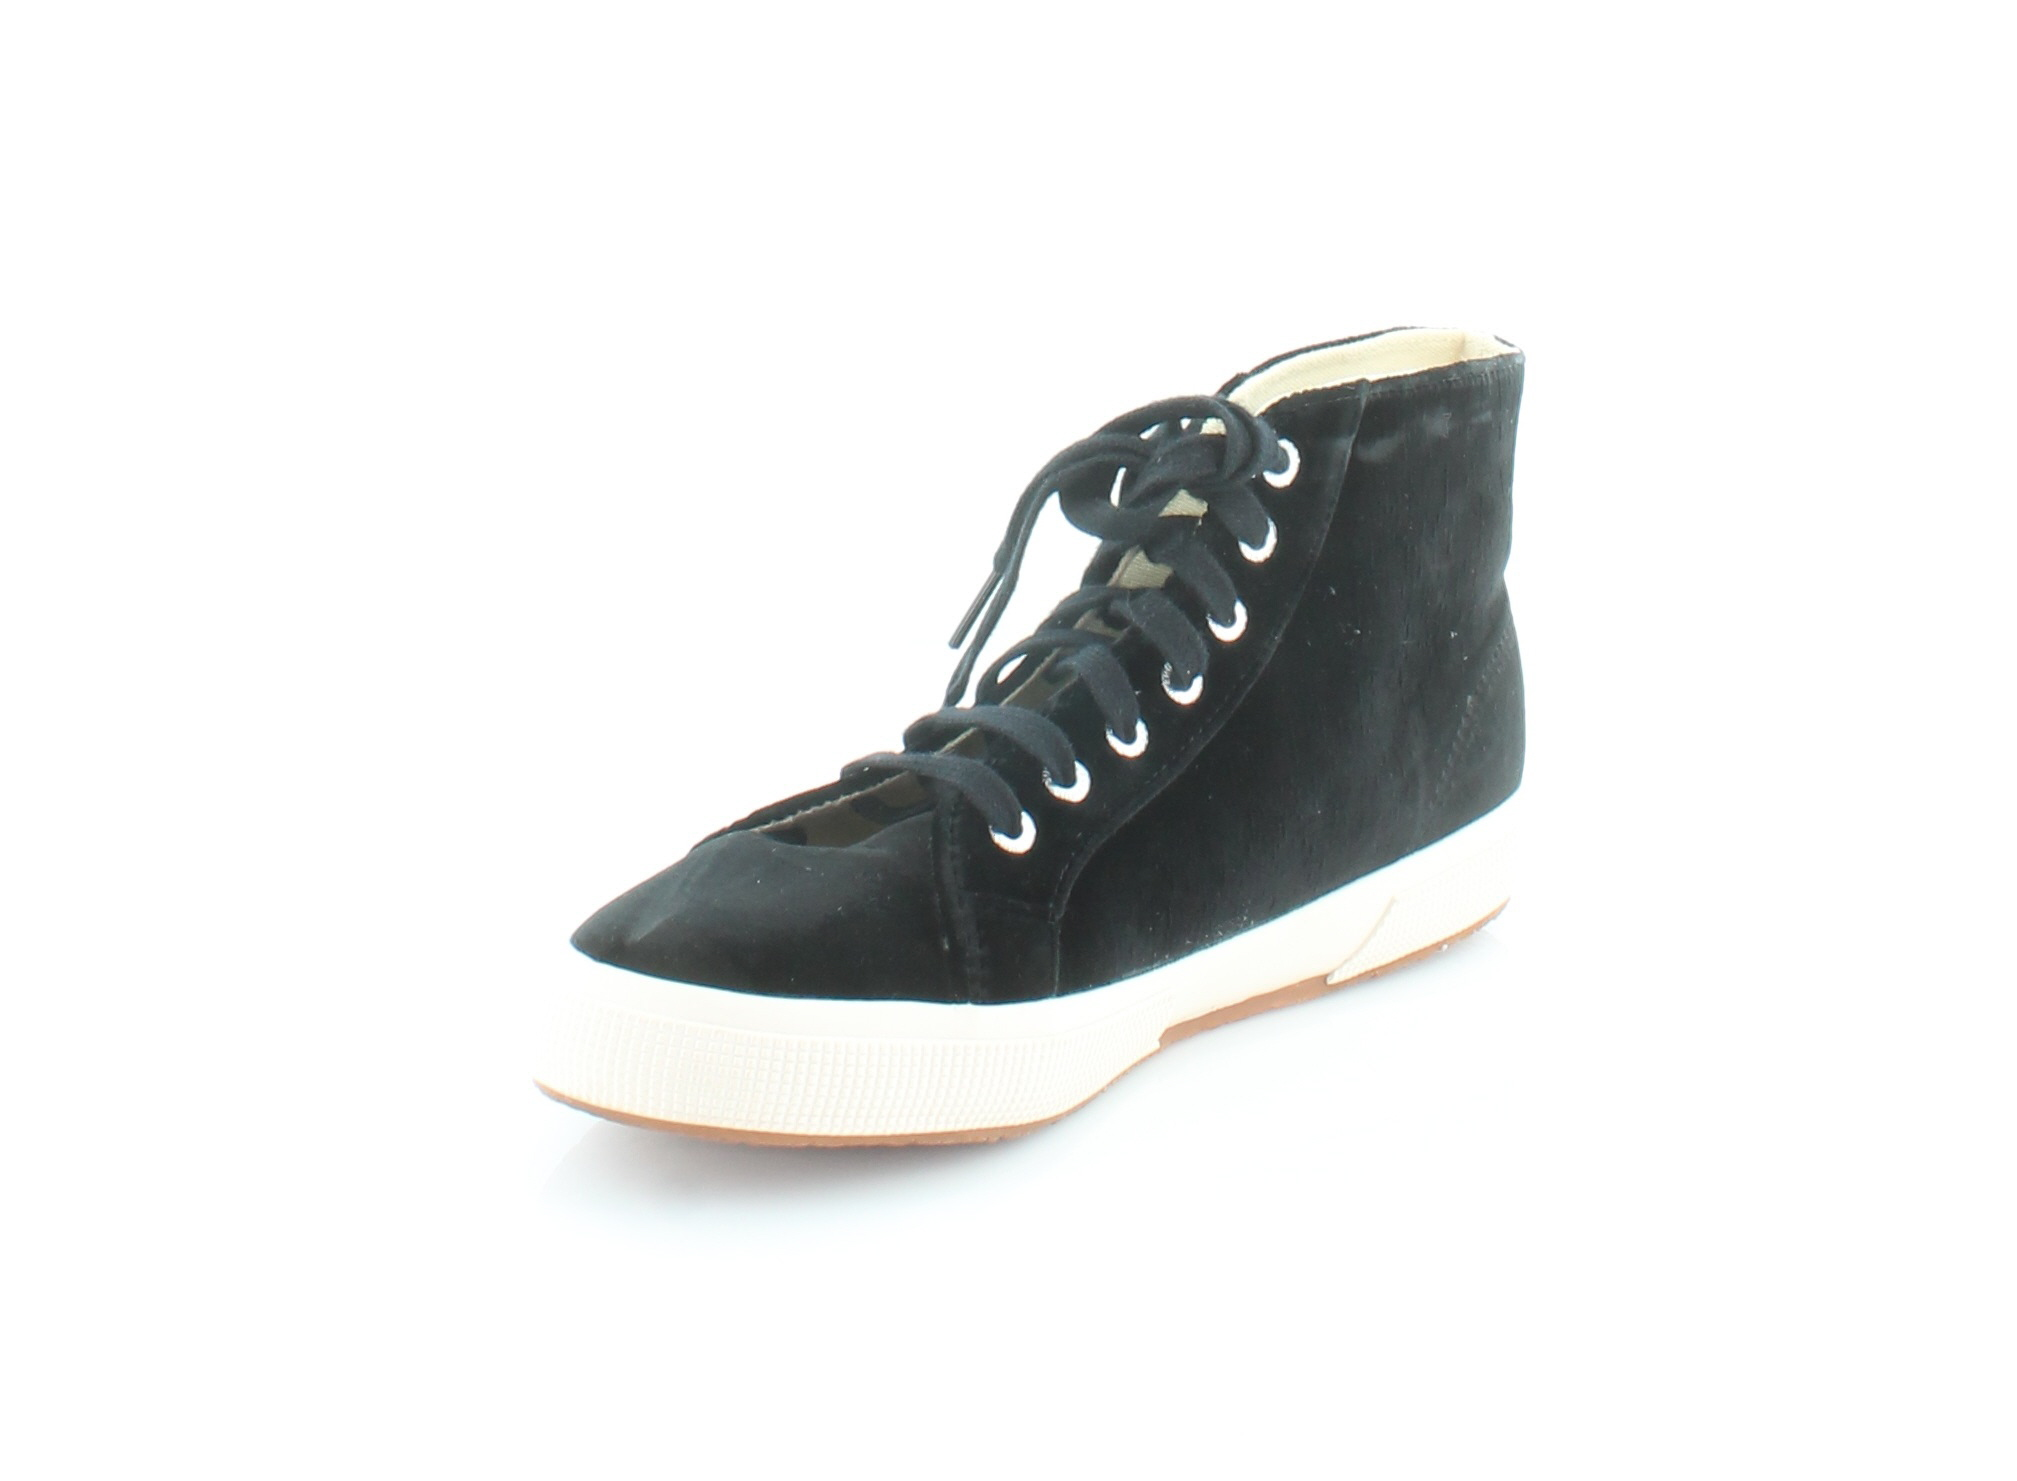 Superga S00AB60 Black Sneakers Womens Shoes Size 9 M Fashion Sneakers Black MSRP $139 038aa8